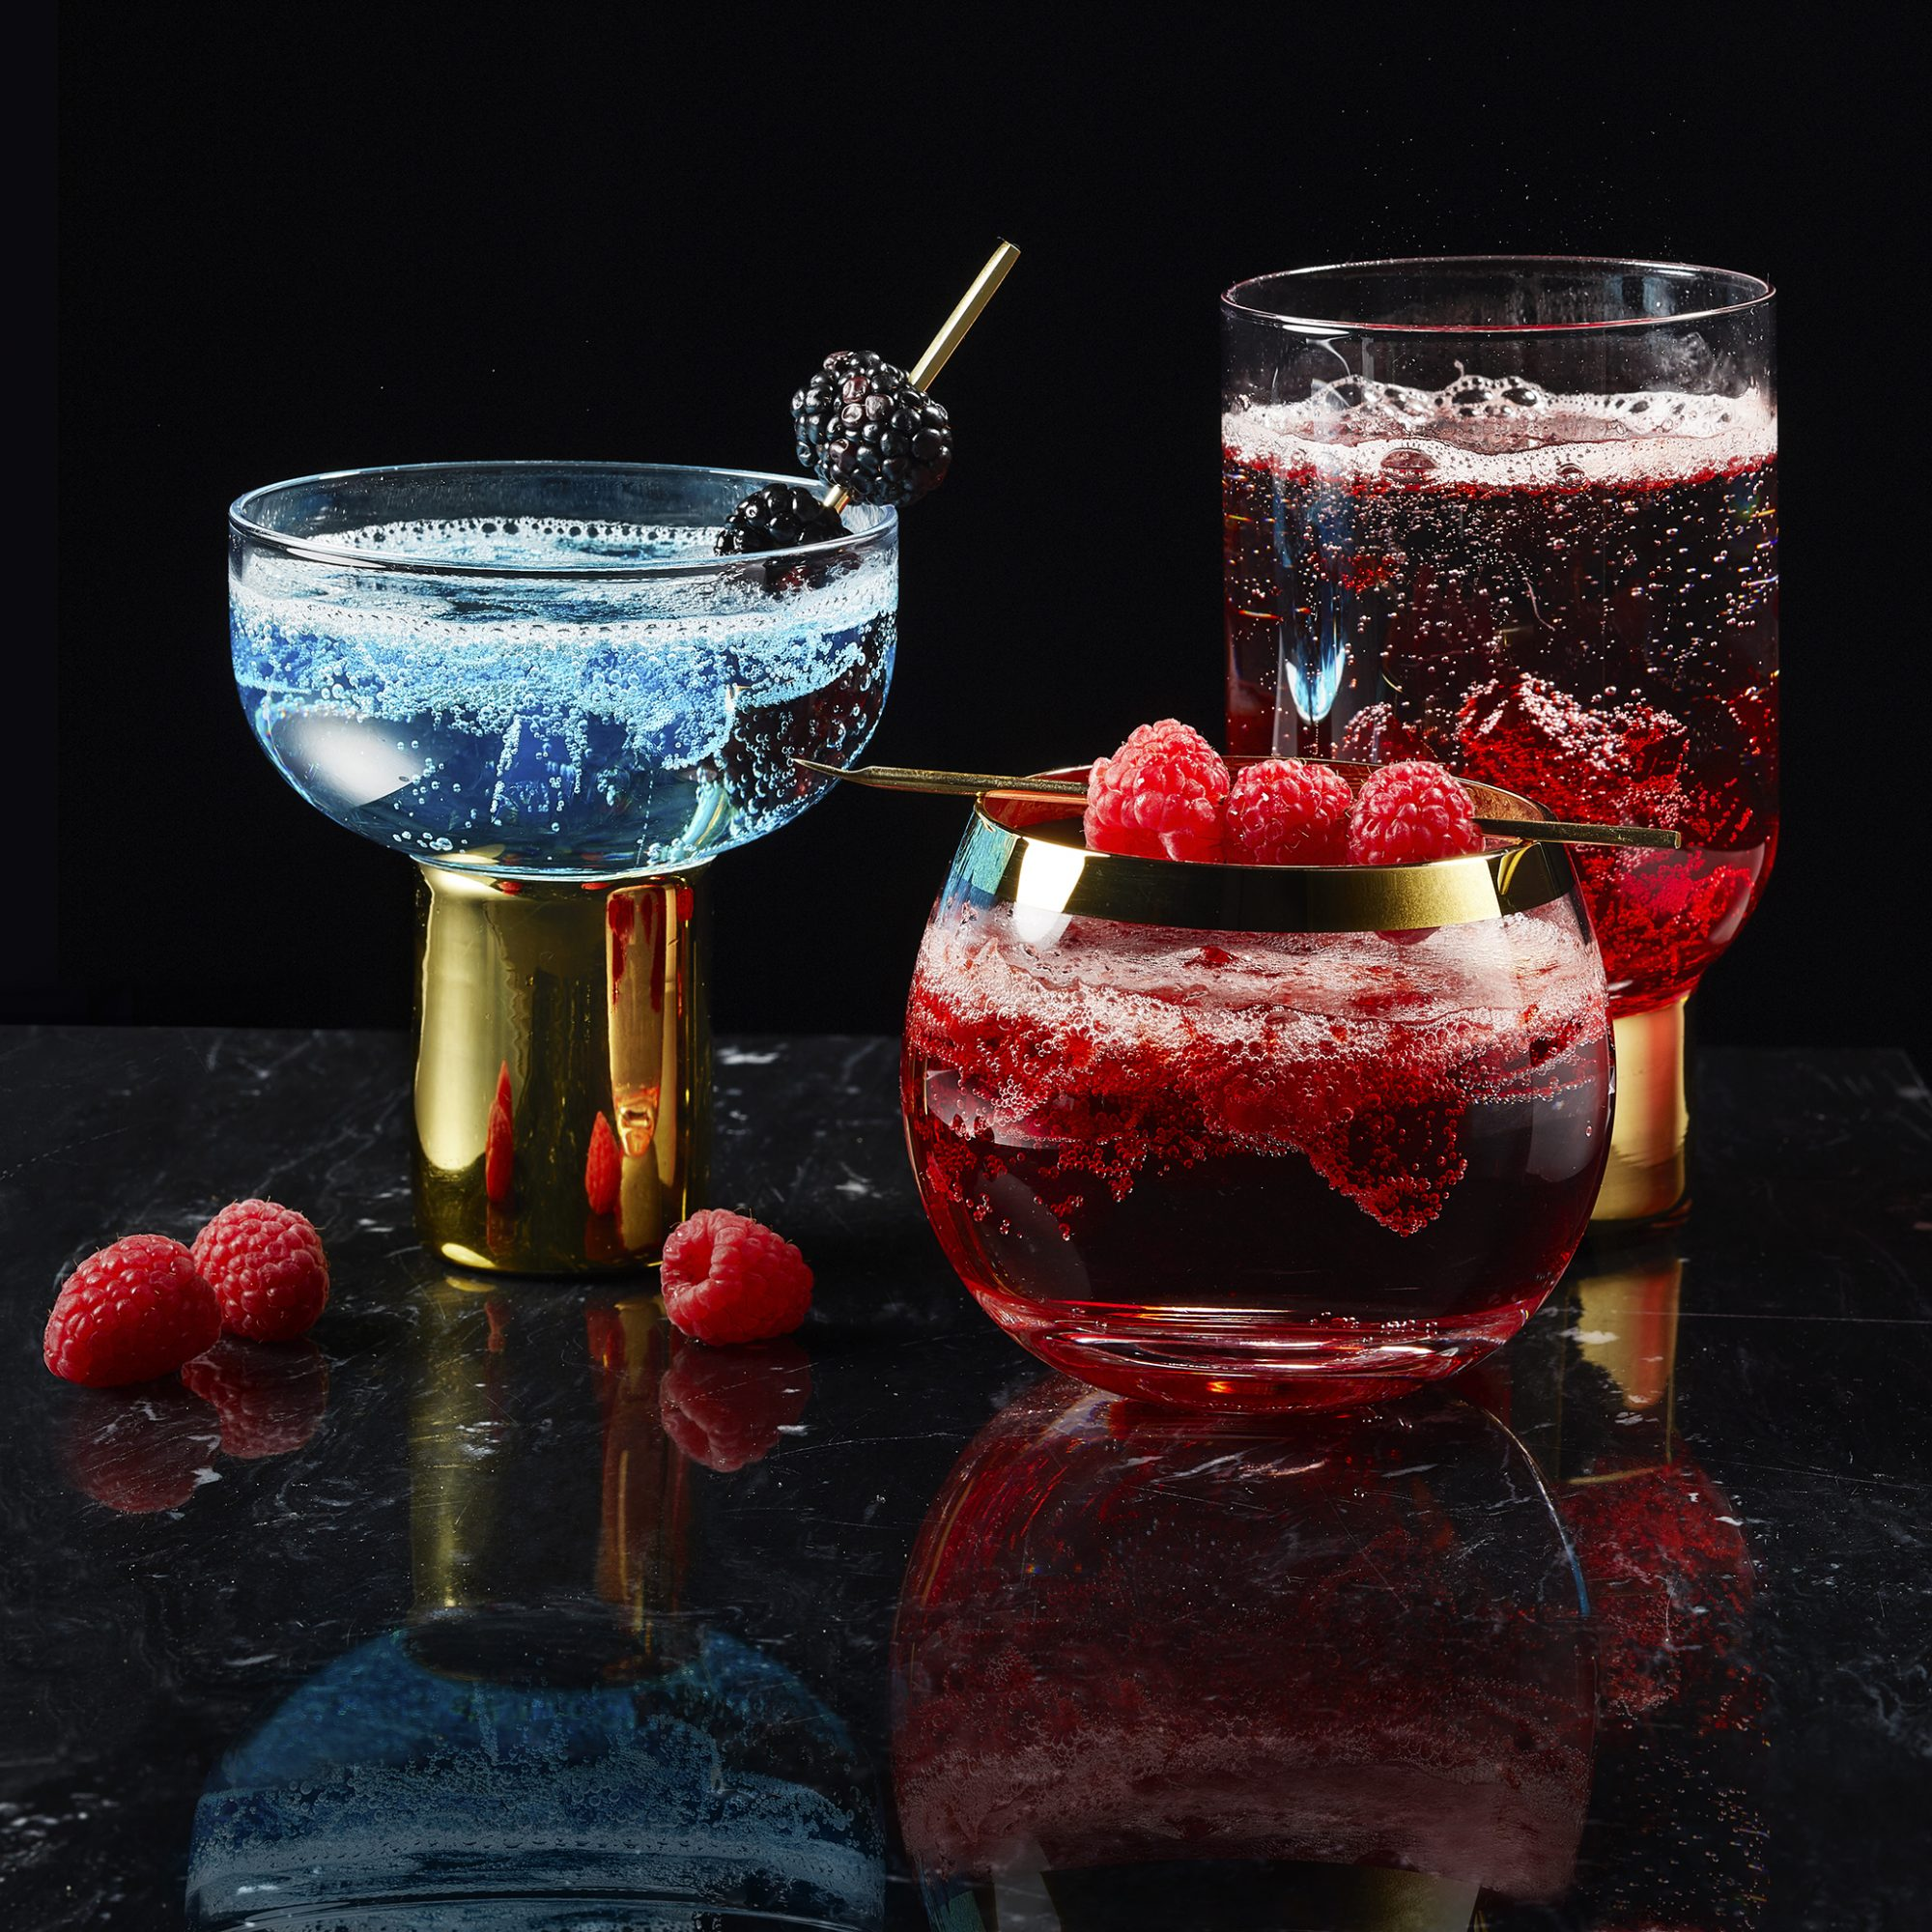 Three effervescent and colorful Lava Lamp Cocktails, garnished with fresh berries